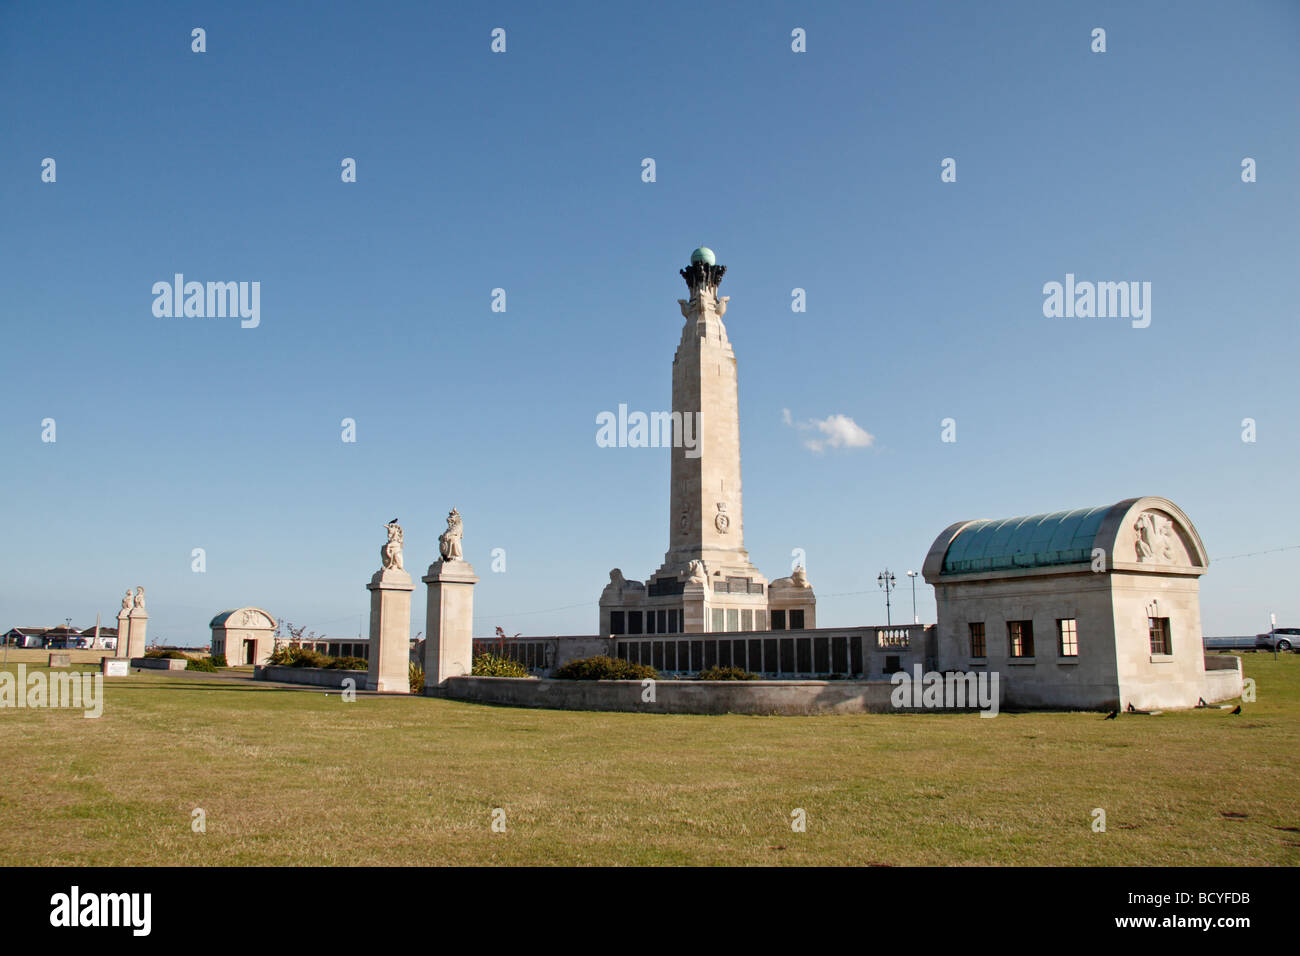 The Portsmouth Naval Memorial on the Southsea seafront, Portsmouth, Hampshire, UK. Stock Photo